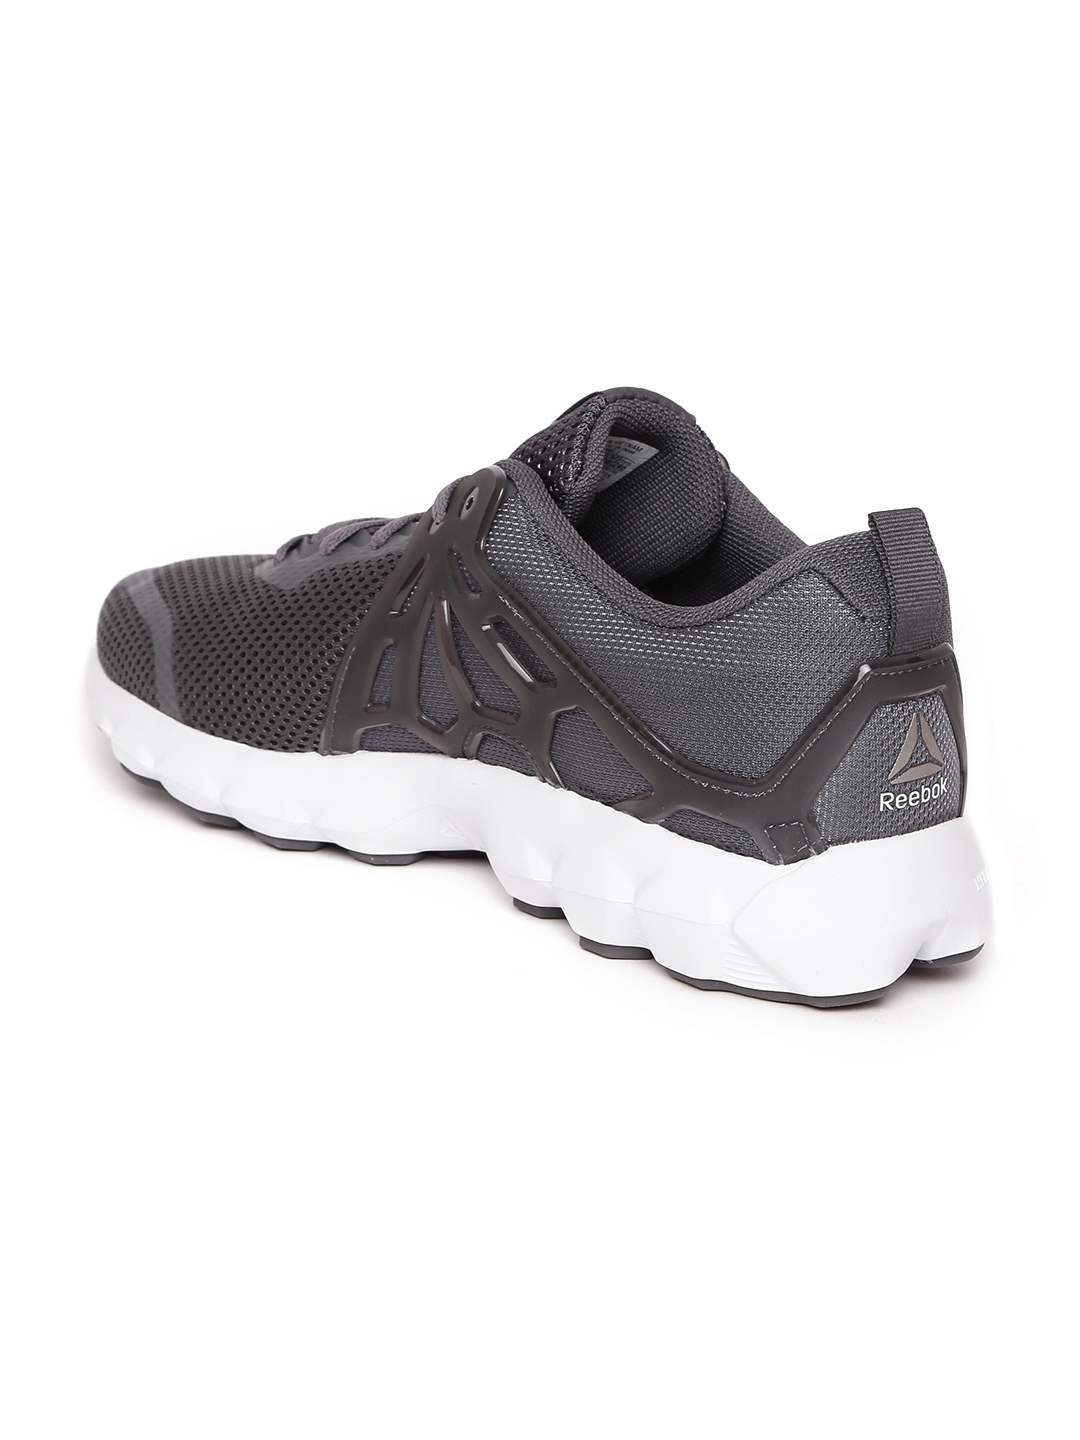 10e948bd37973a Buy Reebok Men Grey Hexaffect 5.0 MTM Running Shoes - Sports Shoes ...